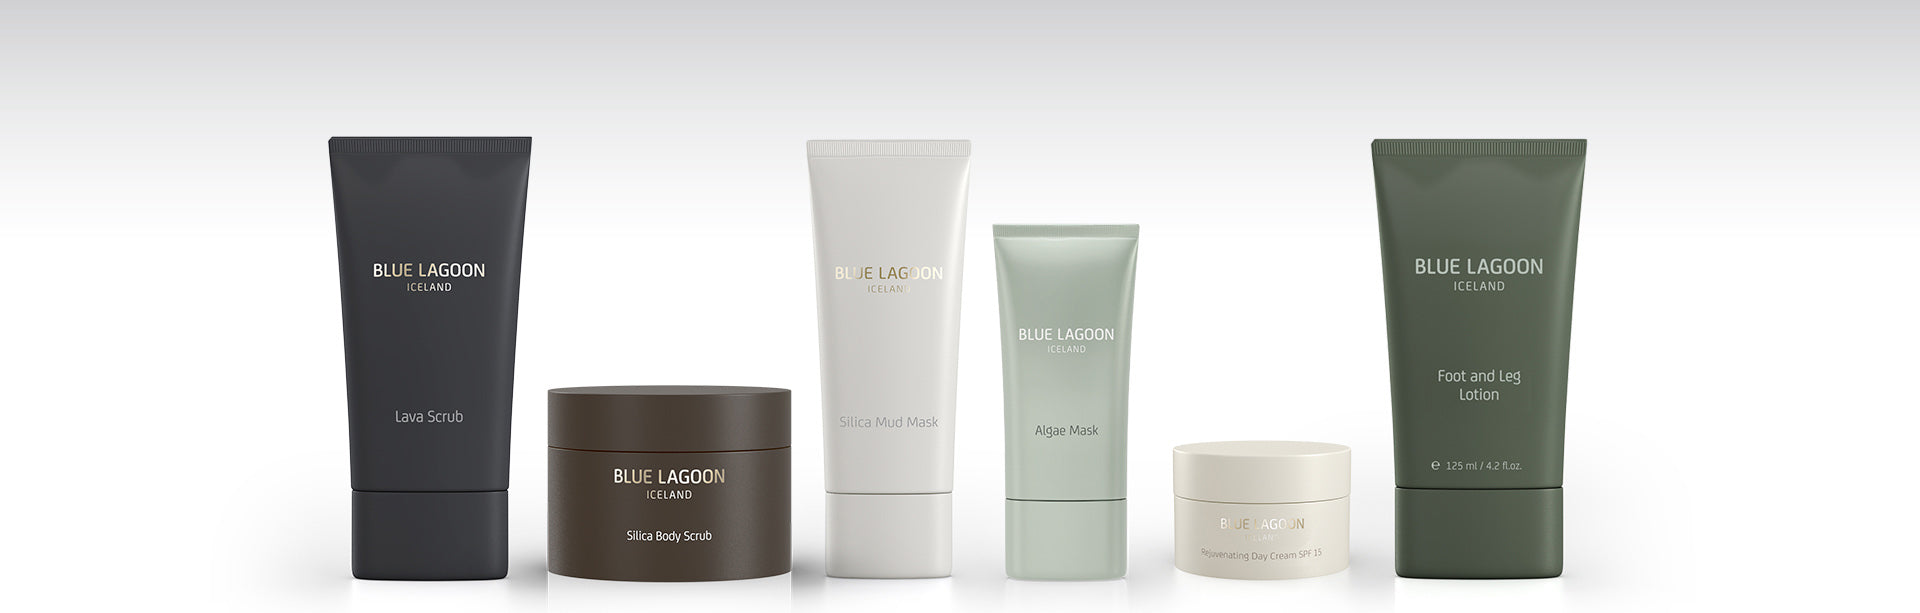 Blue Lagoon skin care products